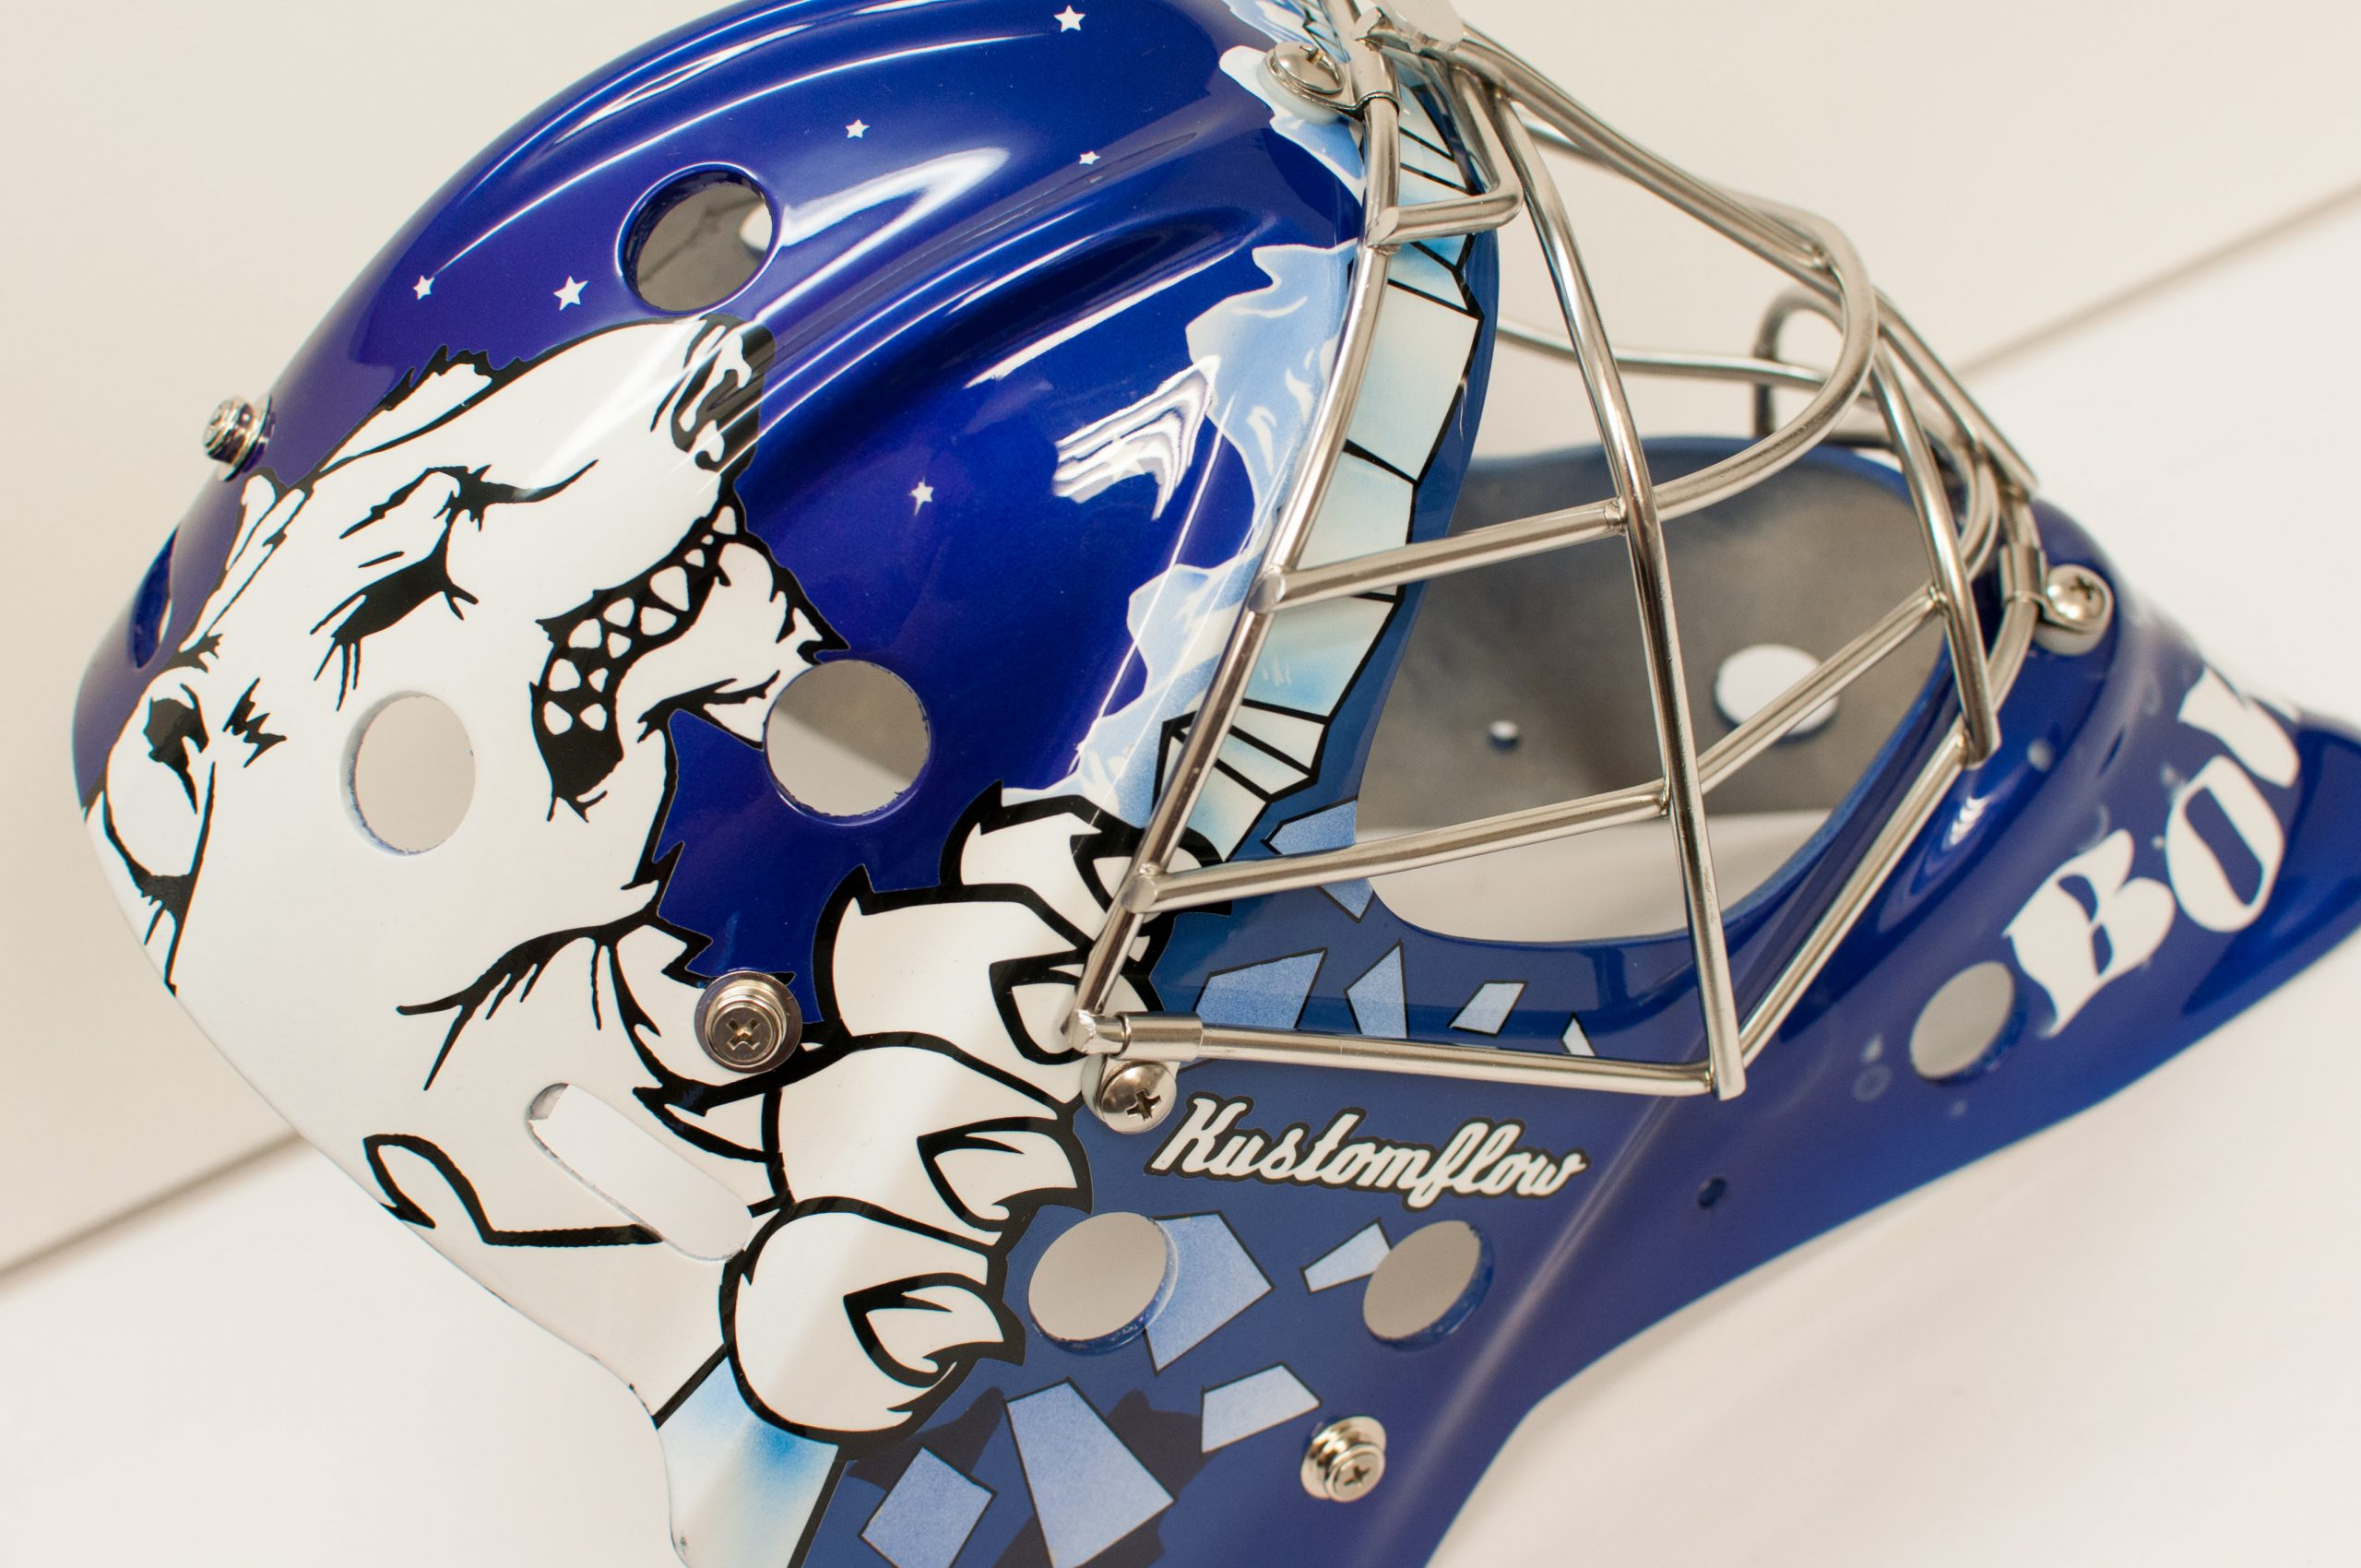 New season, new airbrushed goalie mask for Hull Stingrays Bownsy